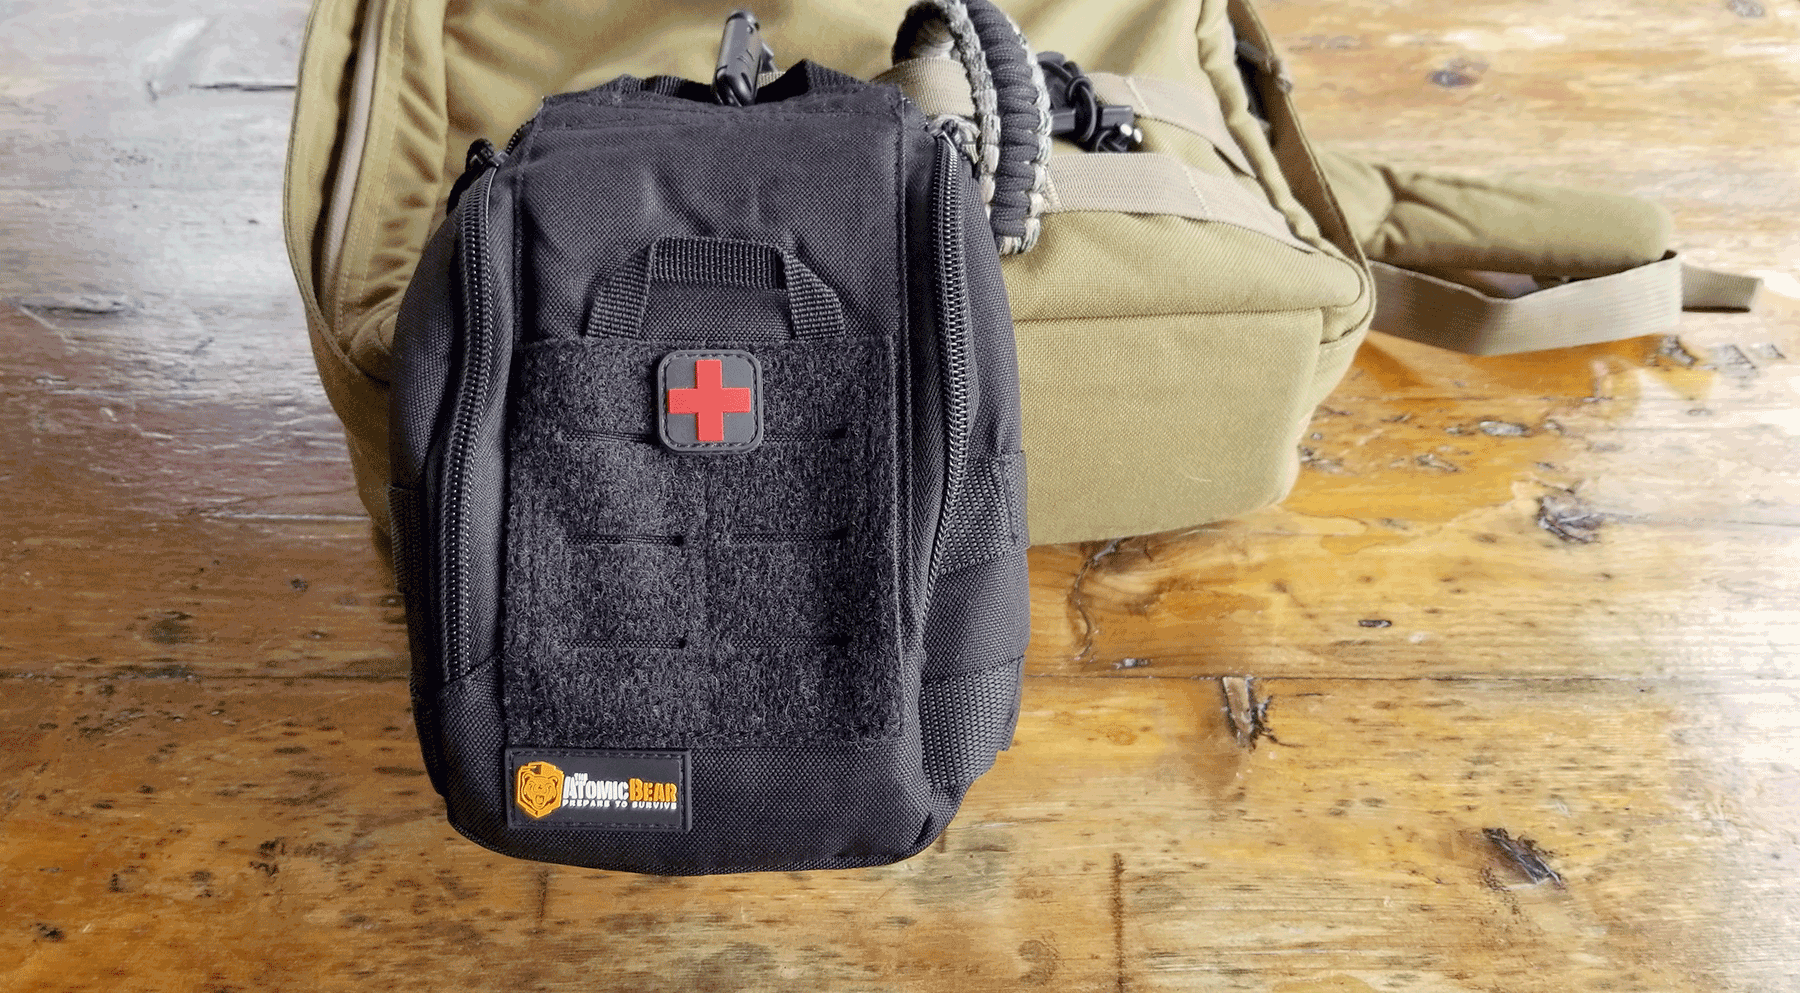 Review Of The Individual First Aid Kit Pouch